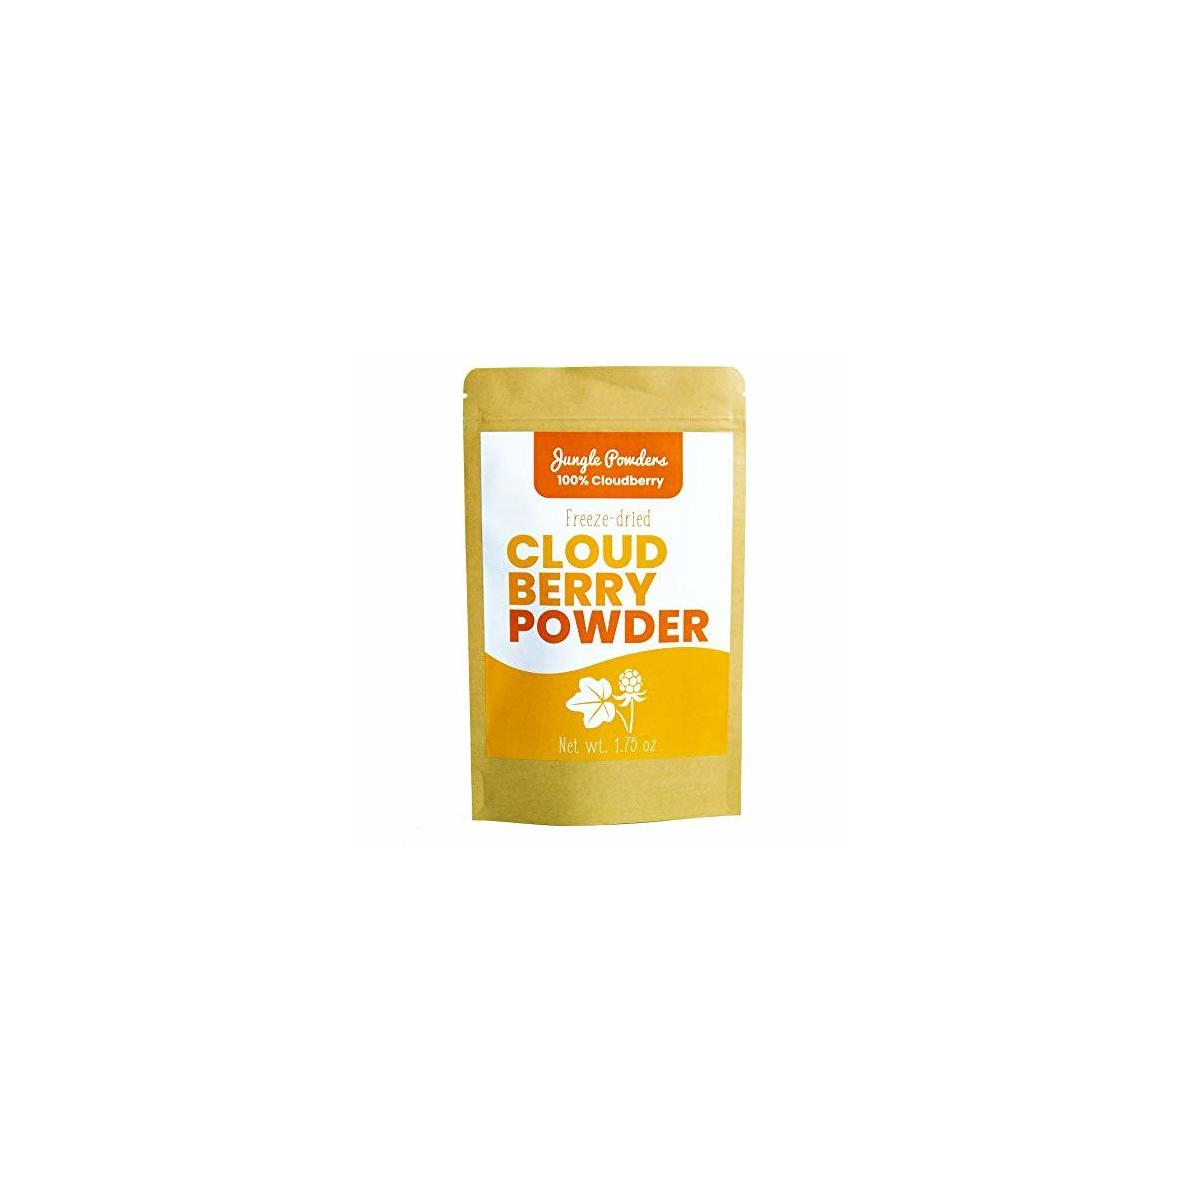 Jungle Powders Wild Cloudberry Powder   1.75oz 100% Natural Cloudberry Extract from Pure and Clean Arctic Nordic Forests   Superfood Powder Freeze Dried Arctic Cloudberry